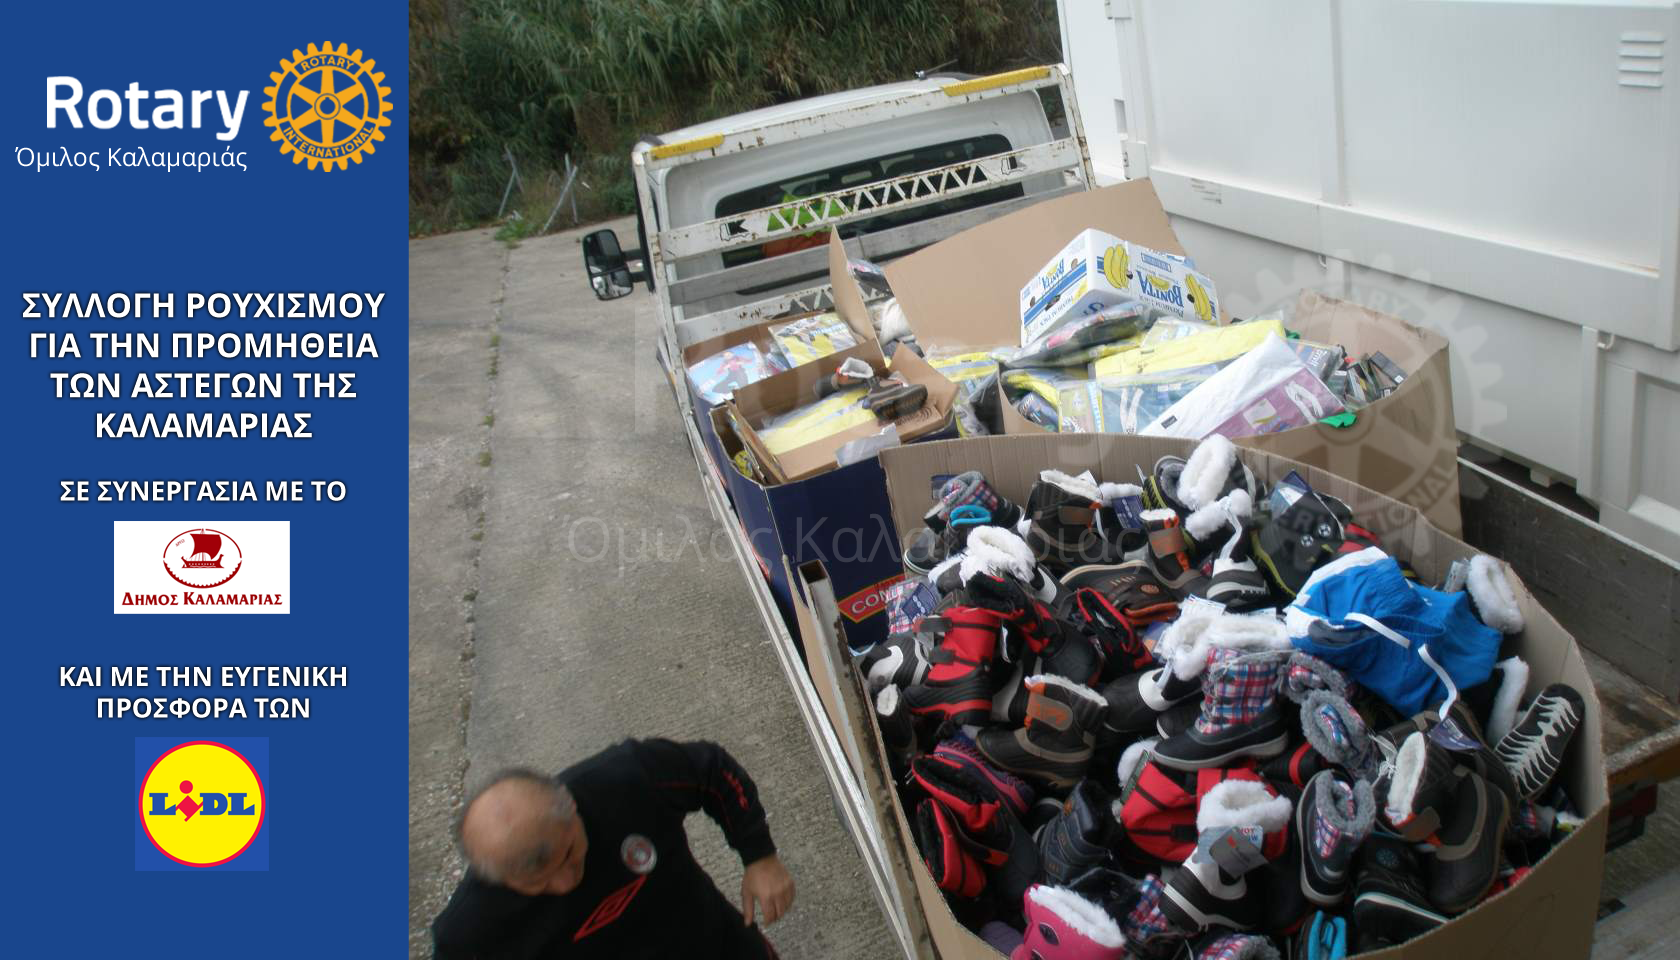 Rotary-Club-Kalamaria-and-Lidl-give-clothes-for-homeles-002